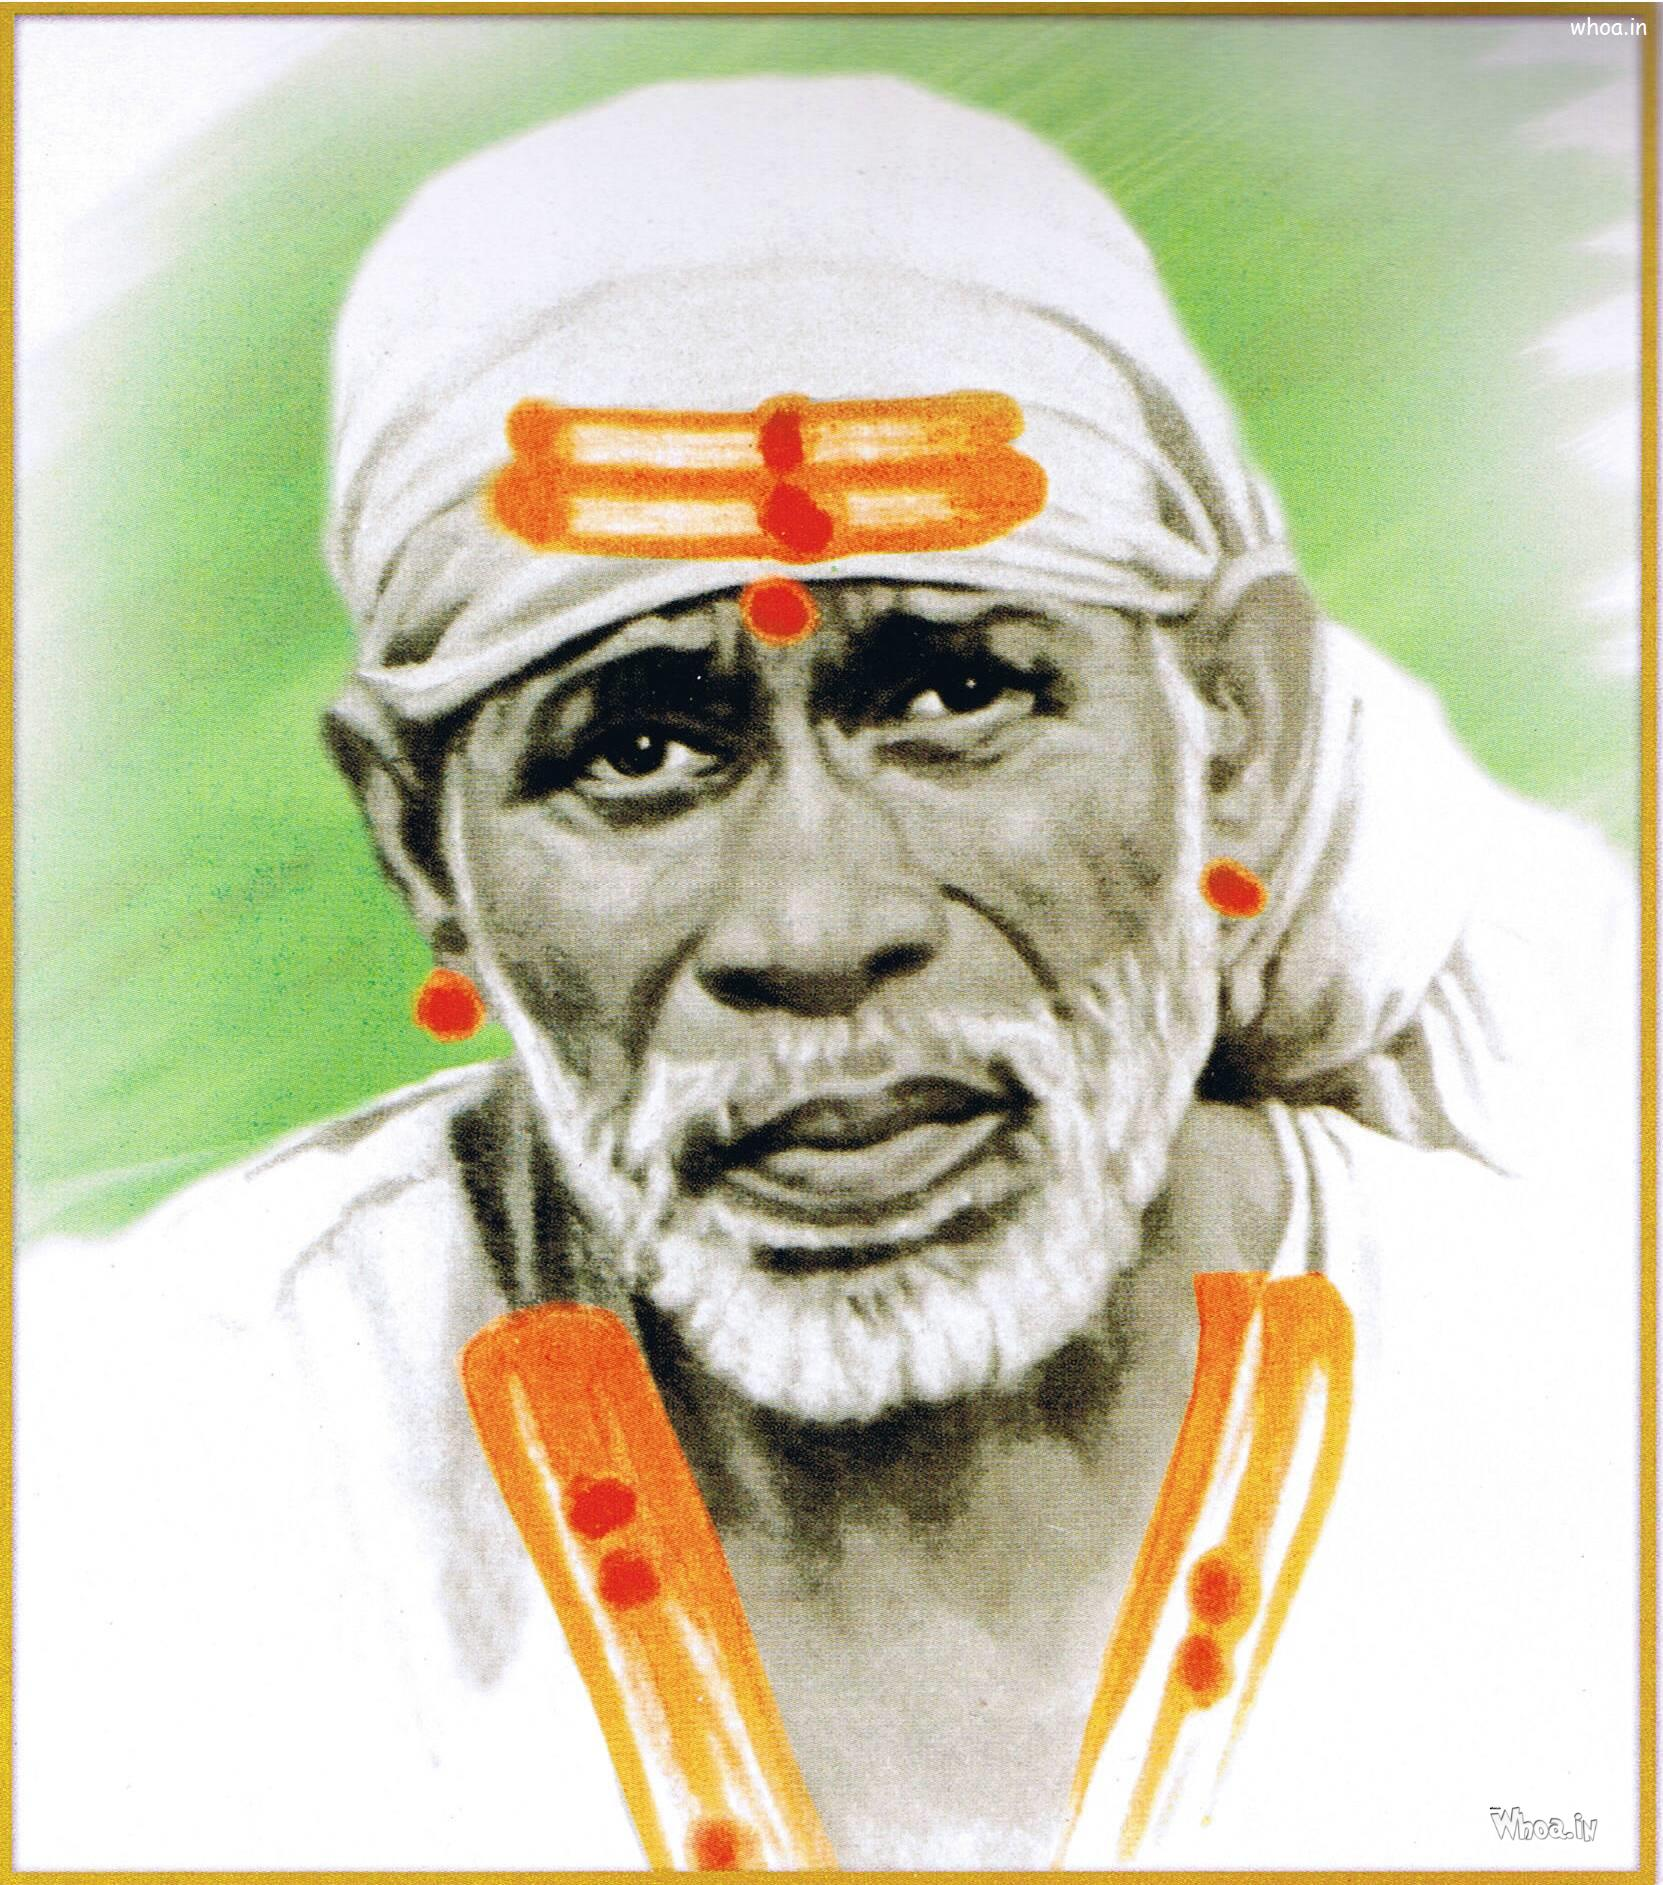 Shirdi Sai Baba Old Original Hd Wallpaper